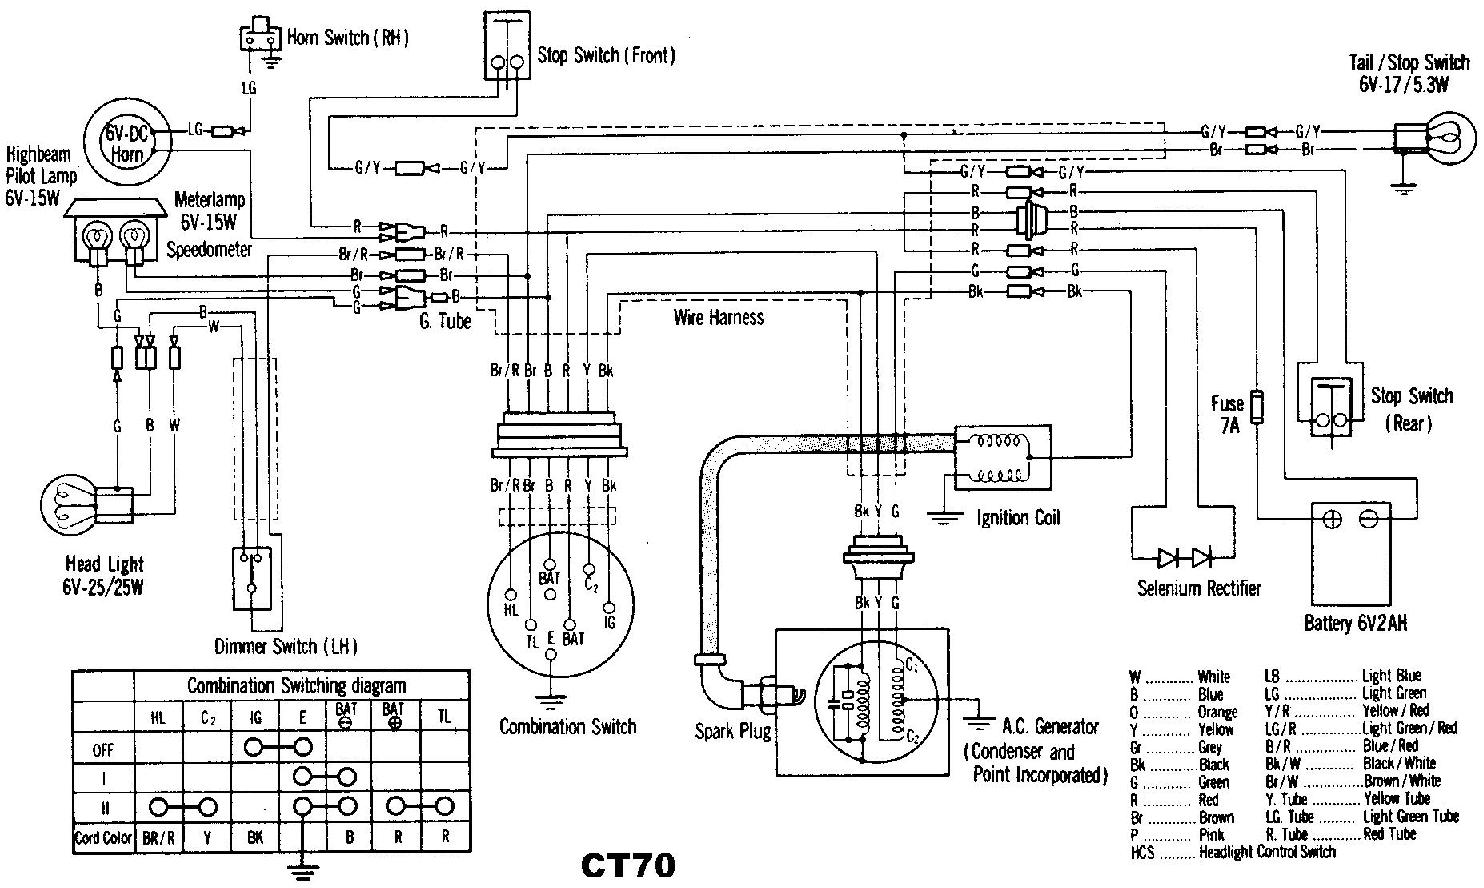 dratv_2269_123803613 tmx wiring diagram honda wiring diagrams instruction honda c70 wiring diagram at gsmx.co